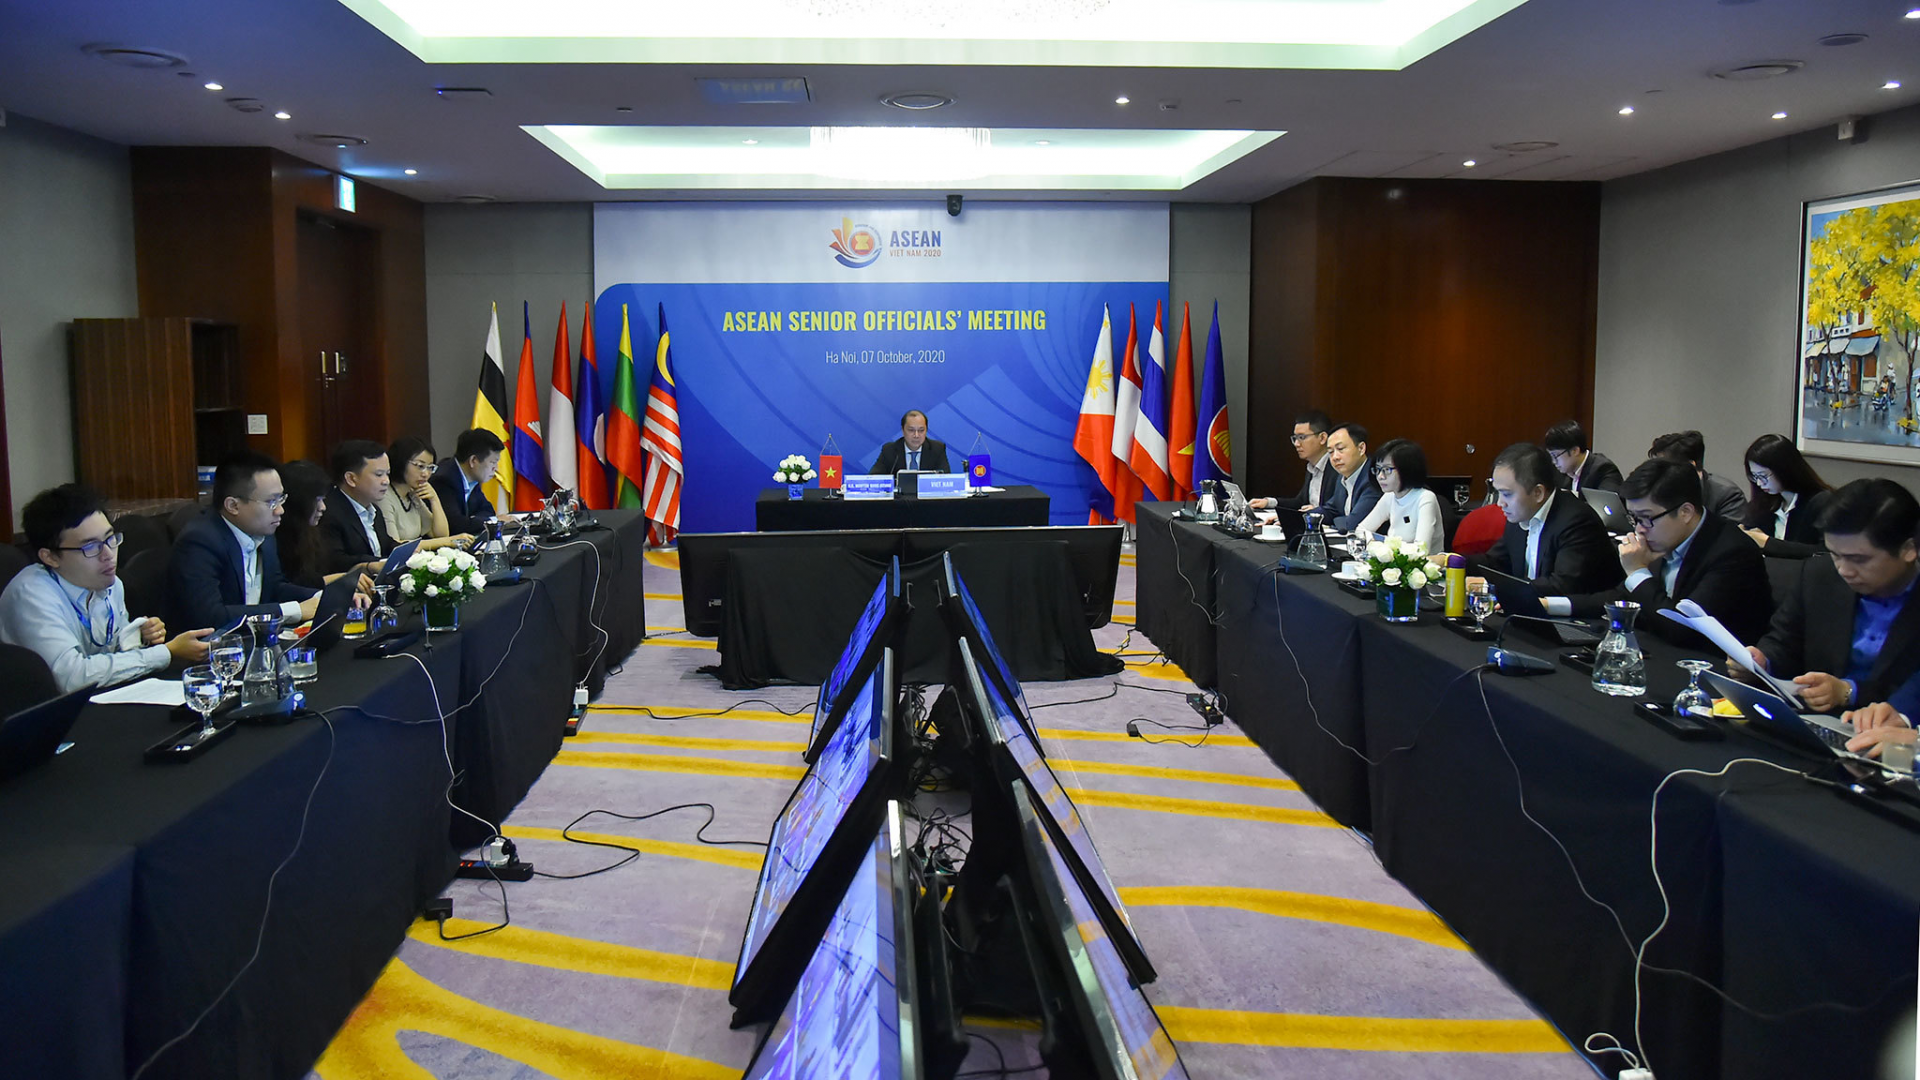 asean pledges to coordinate with china to soon complete talks for code of conduct in south china sea bien dong sea